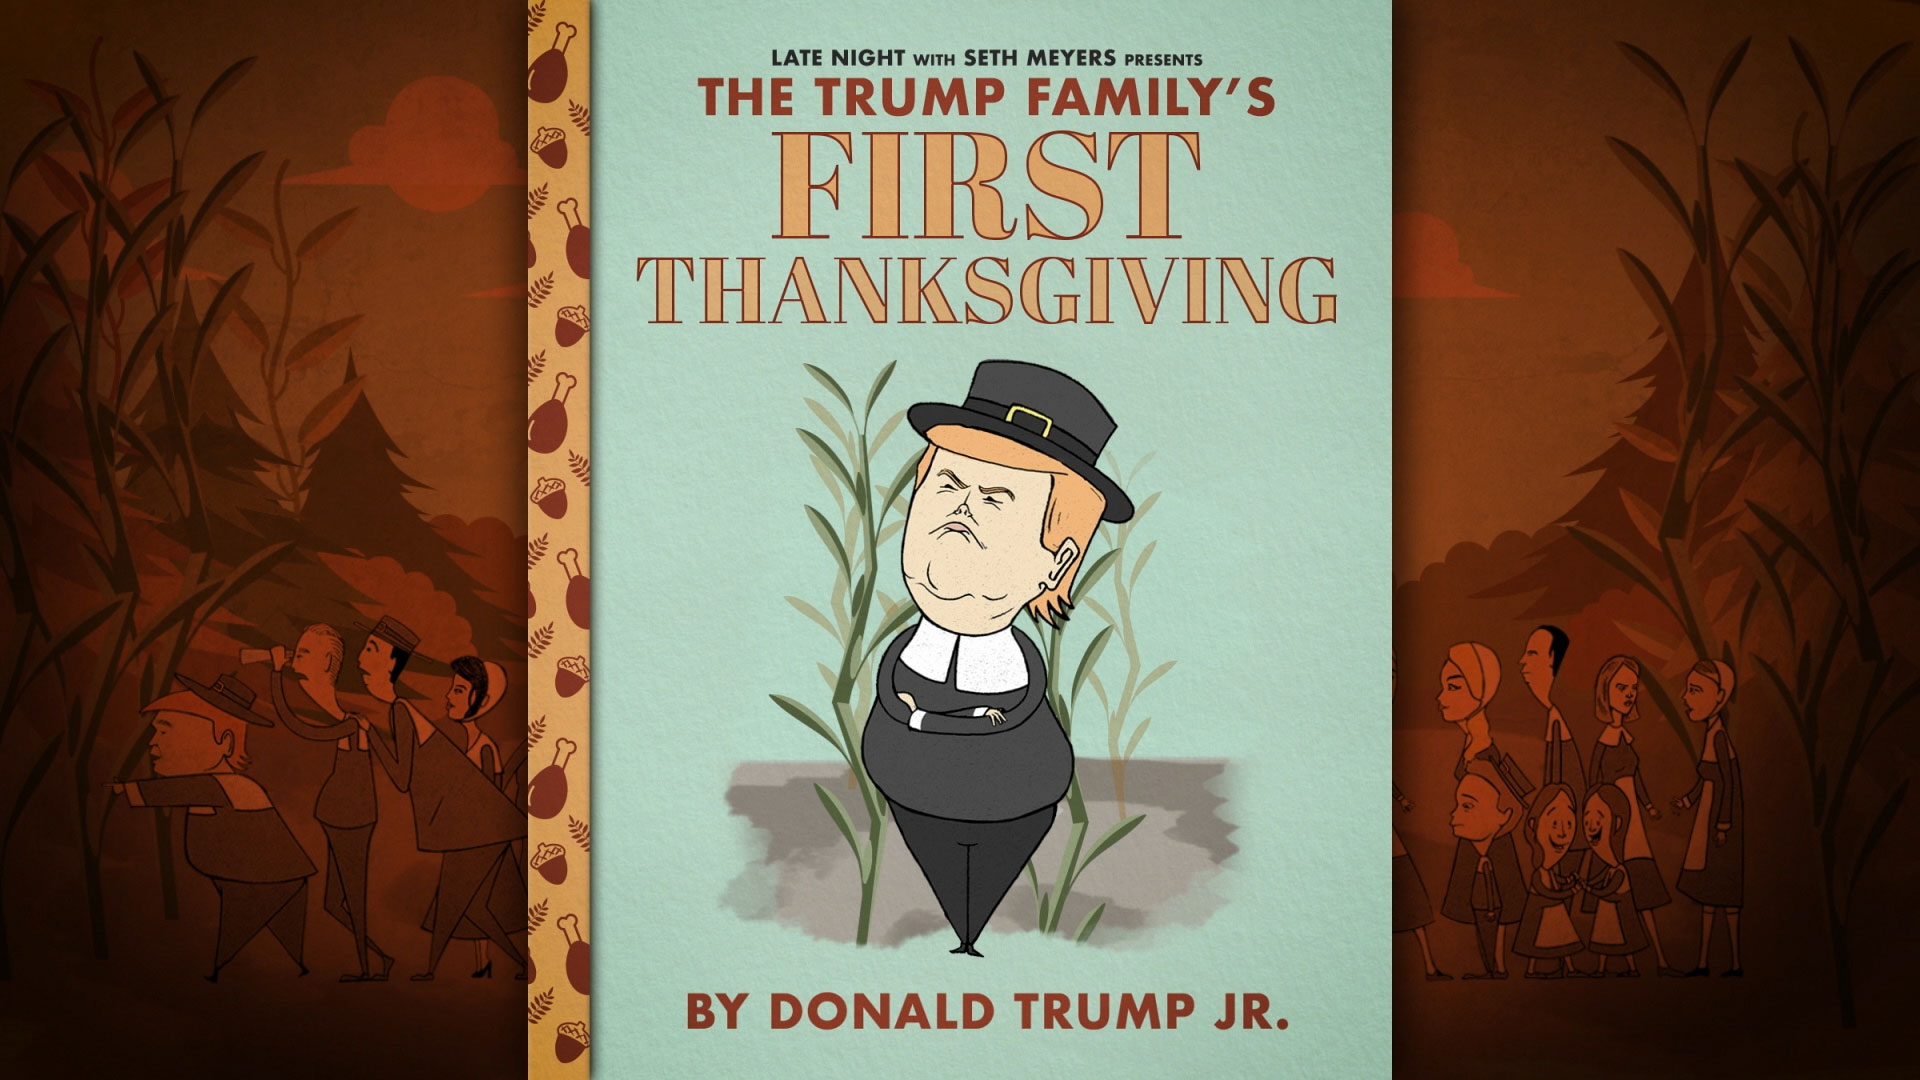 171121_3623898_the_trump_family_s_first_thanksgiving Jpg